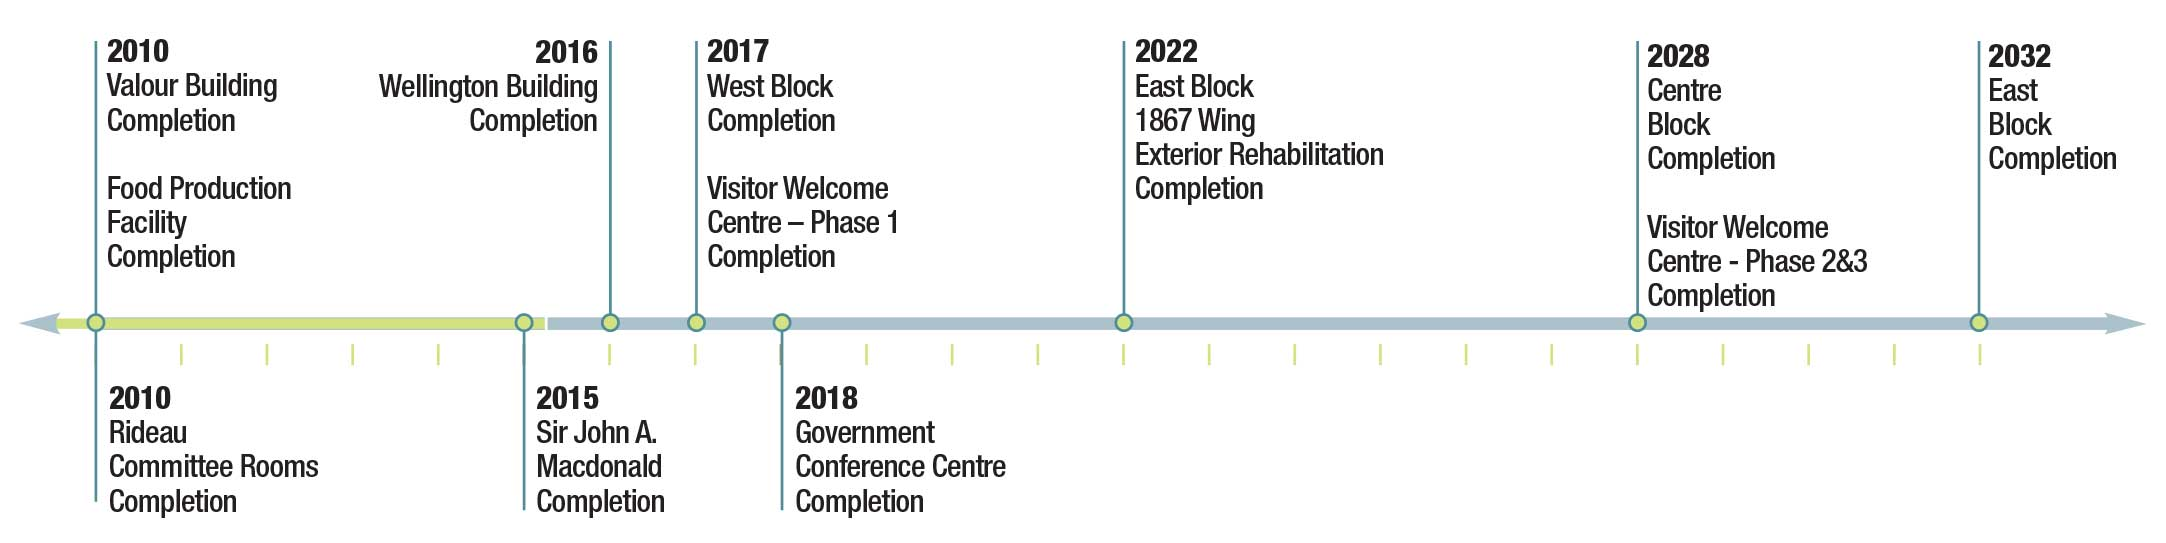 Figure 2.03 – Construction completion milestone timeline - Text description of the chart in the table below.